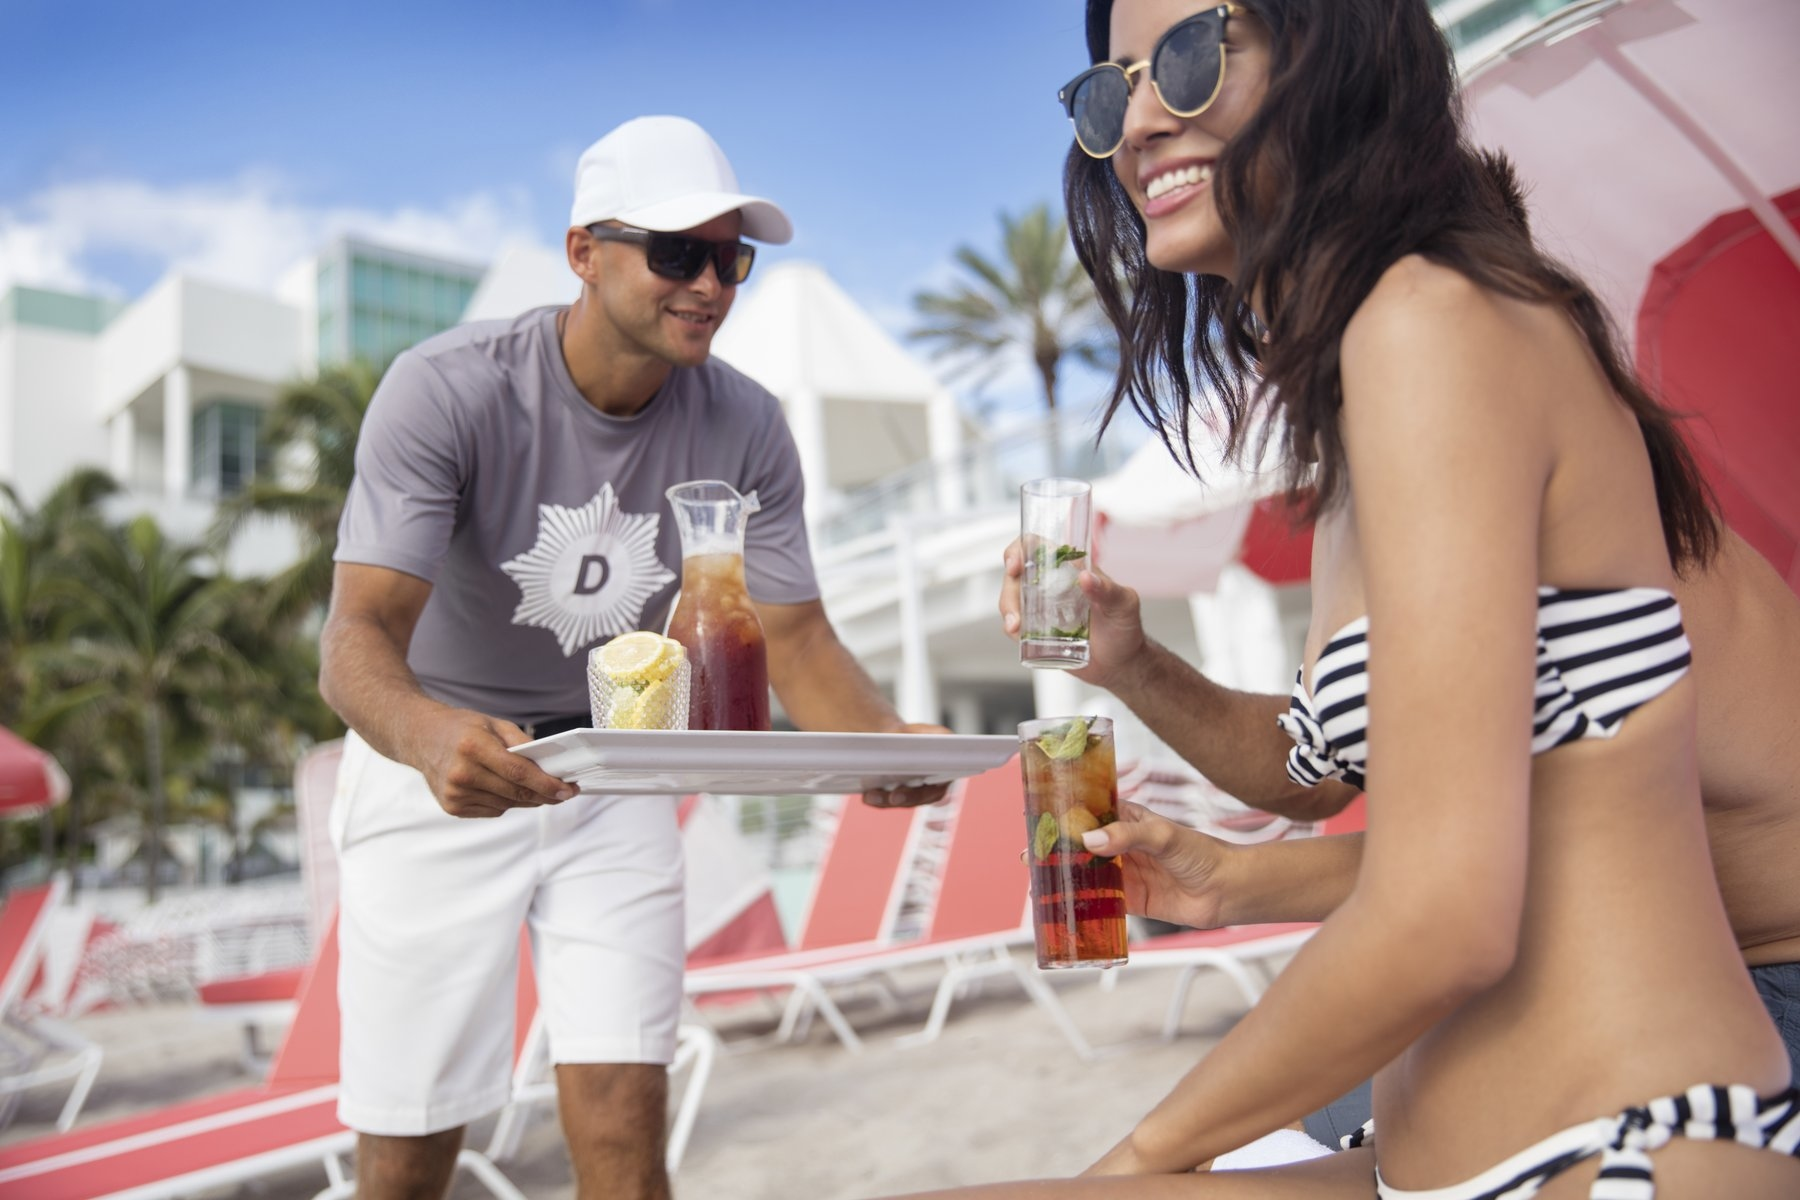 Drink Service at Beach - The Diplomat Resort